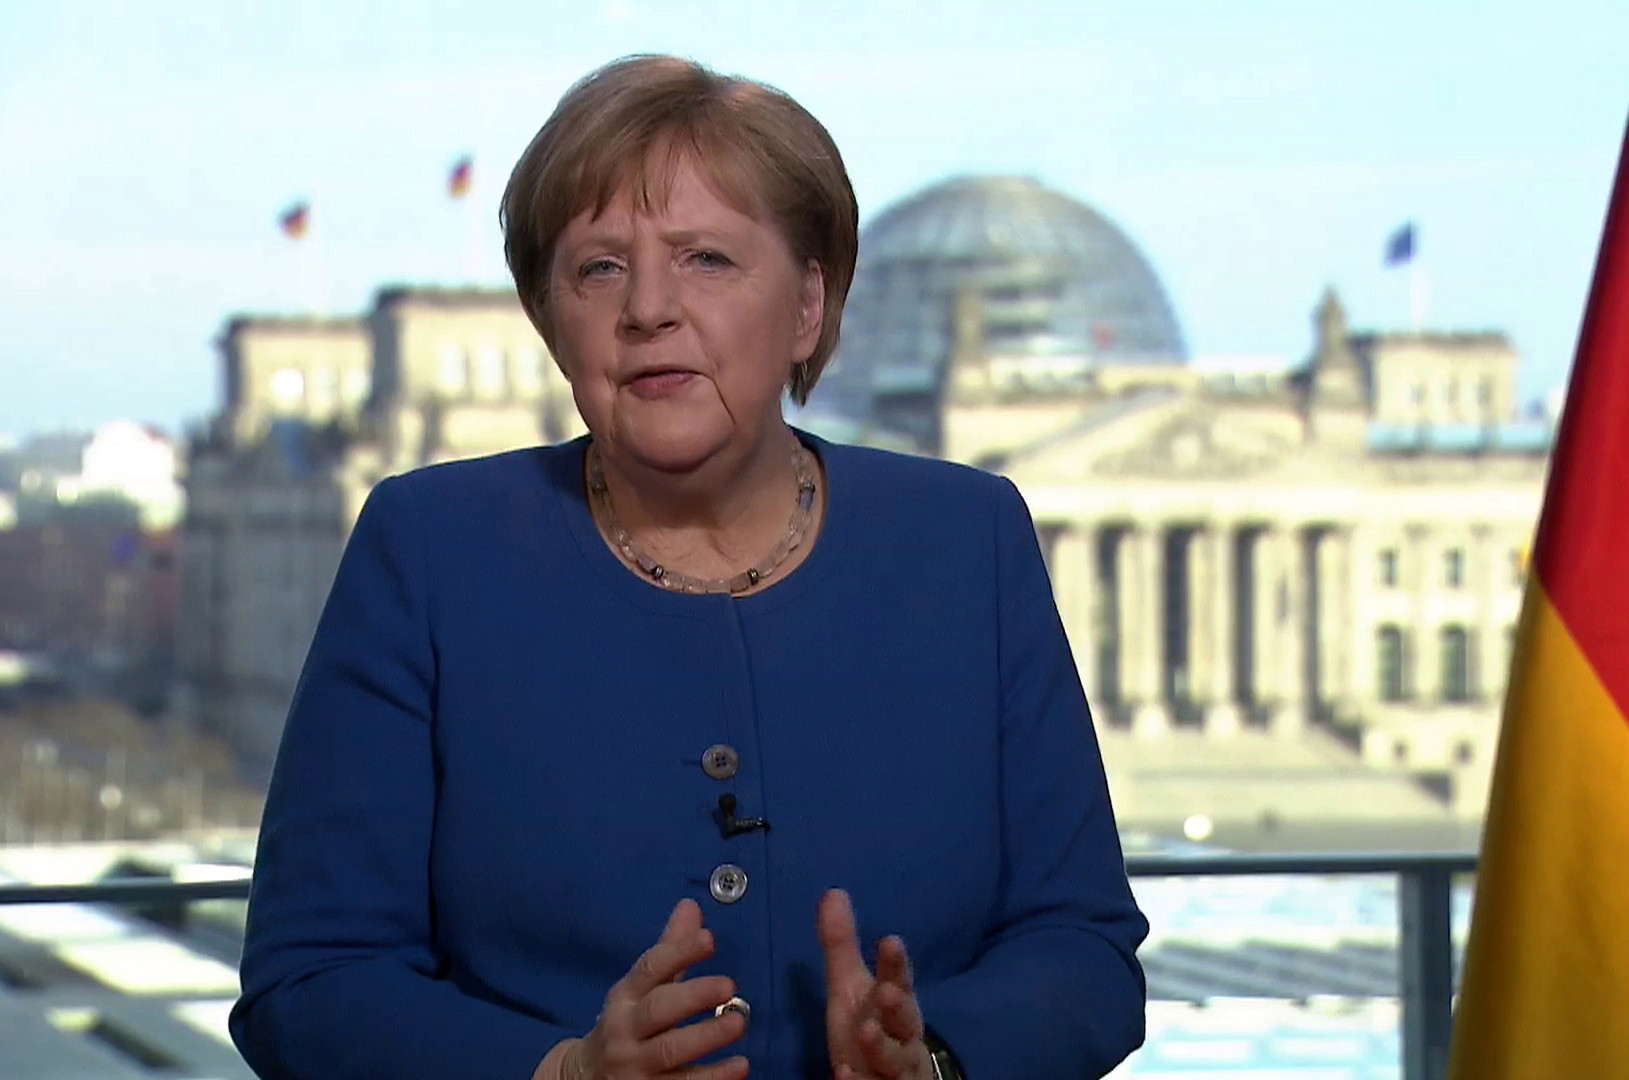 Ms Merkel, 65, was informed about the doctor's test shortly after holding a news conference Sunday